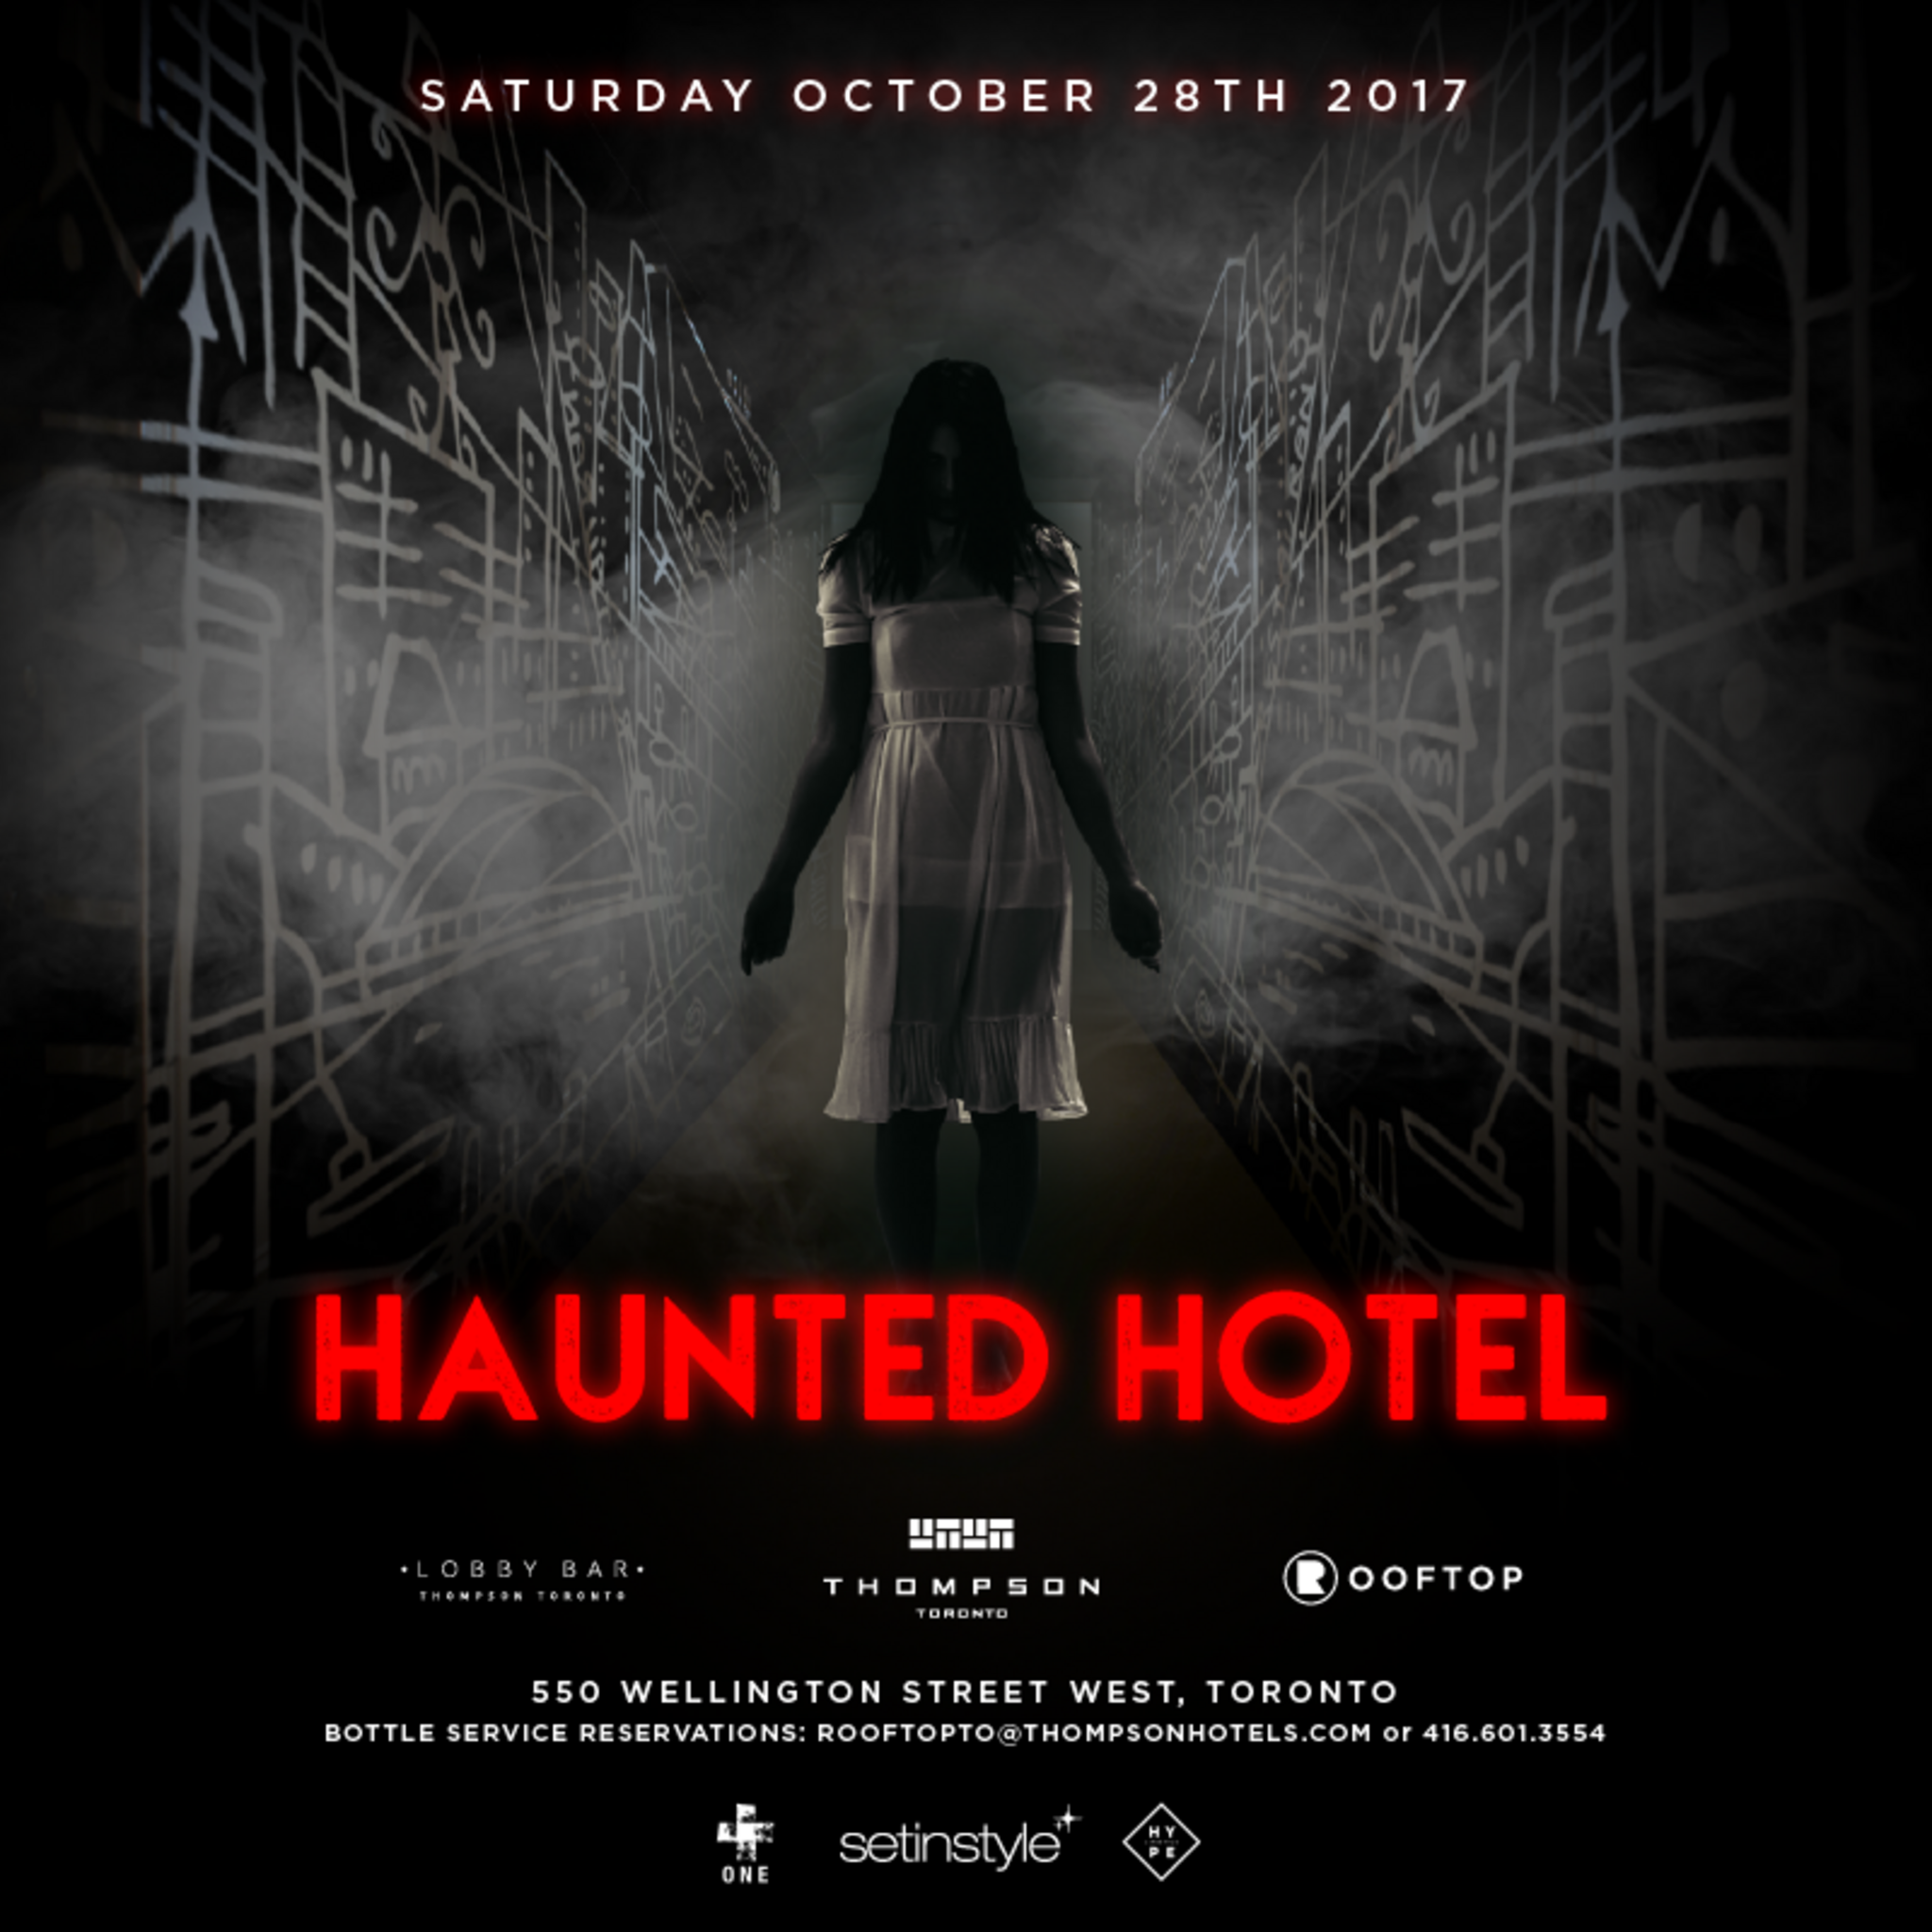 haunted hotel halloween at the thompson hotel